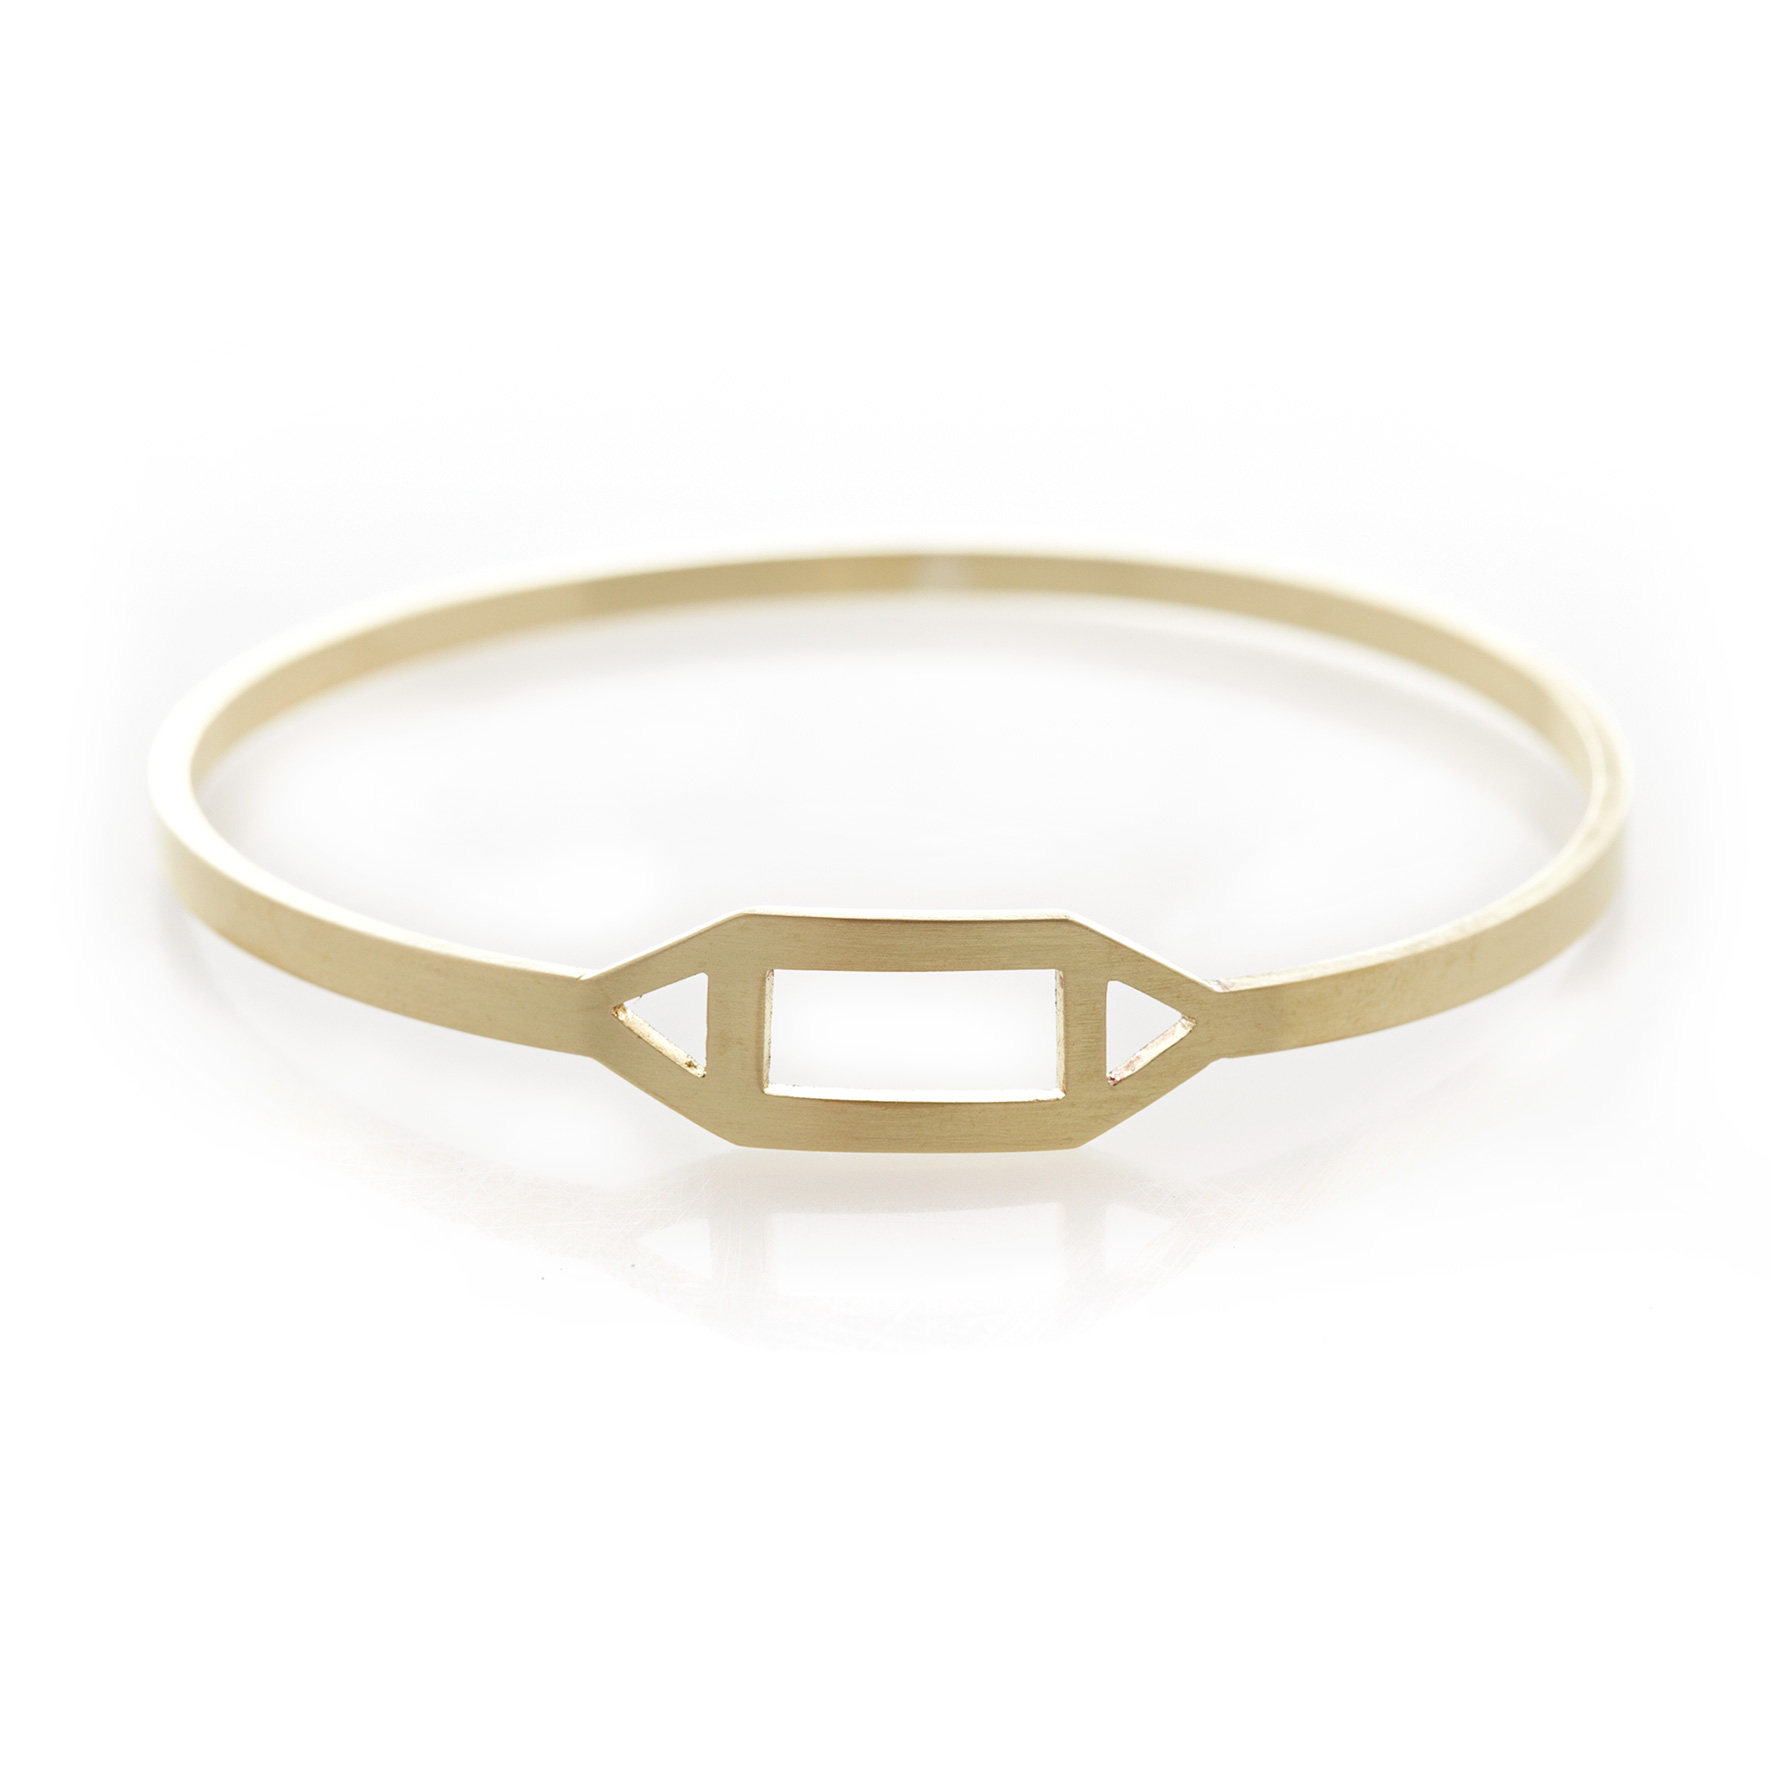 Geometric brass bangle